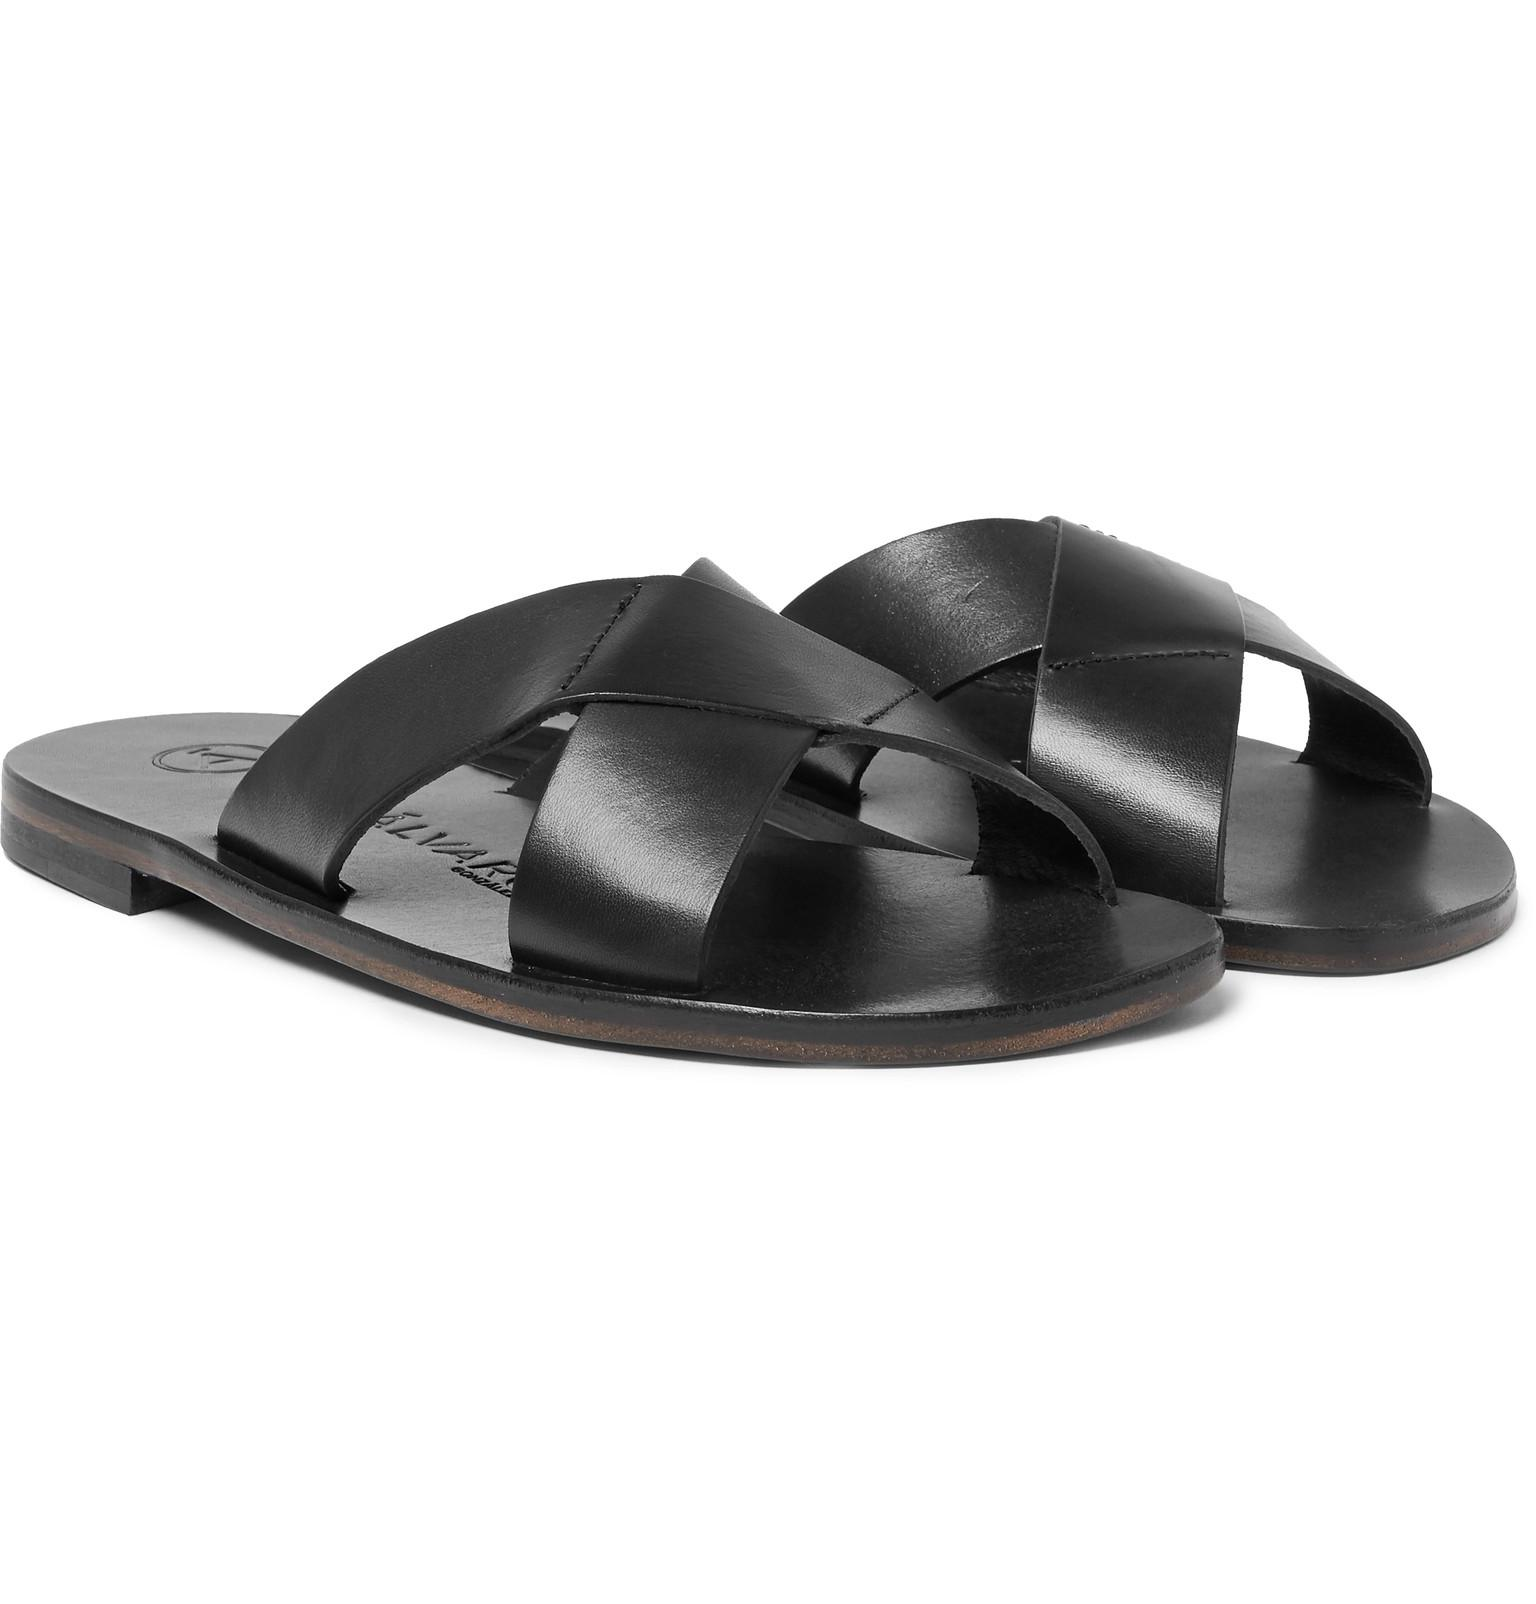 outlet factory outlet Álvaro Antonio Leather Slides cheap 2015 new Inexpensive sale online cheap sale footlocker pictures 93UCj